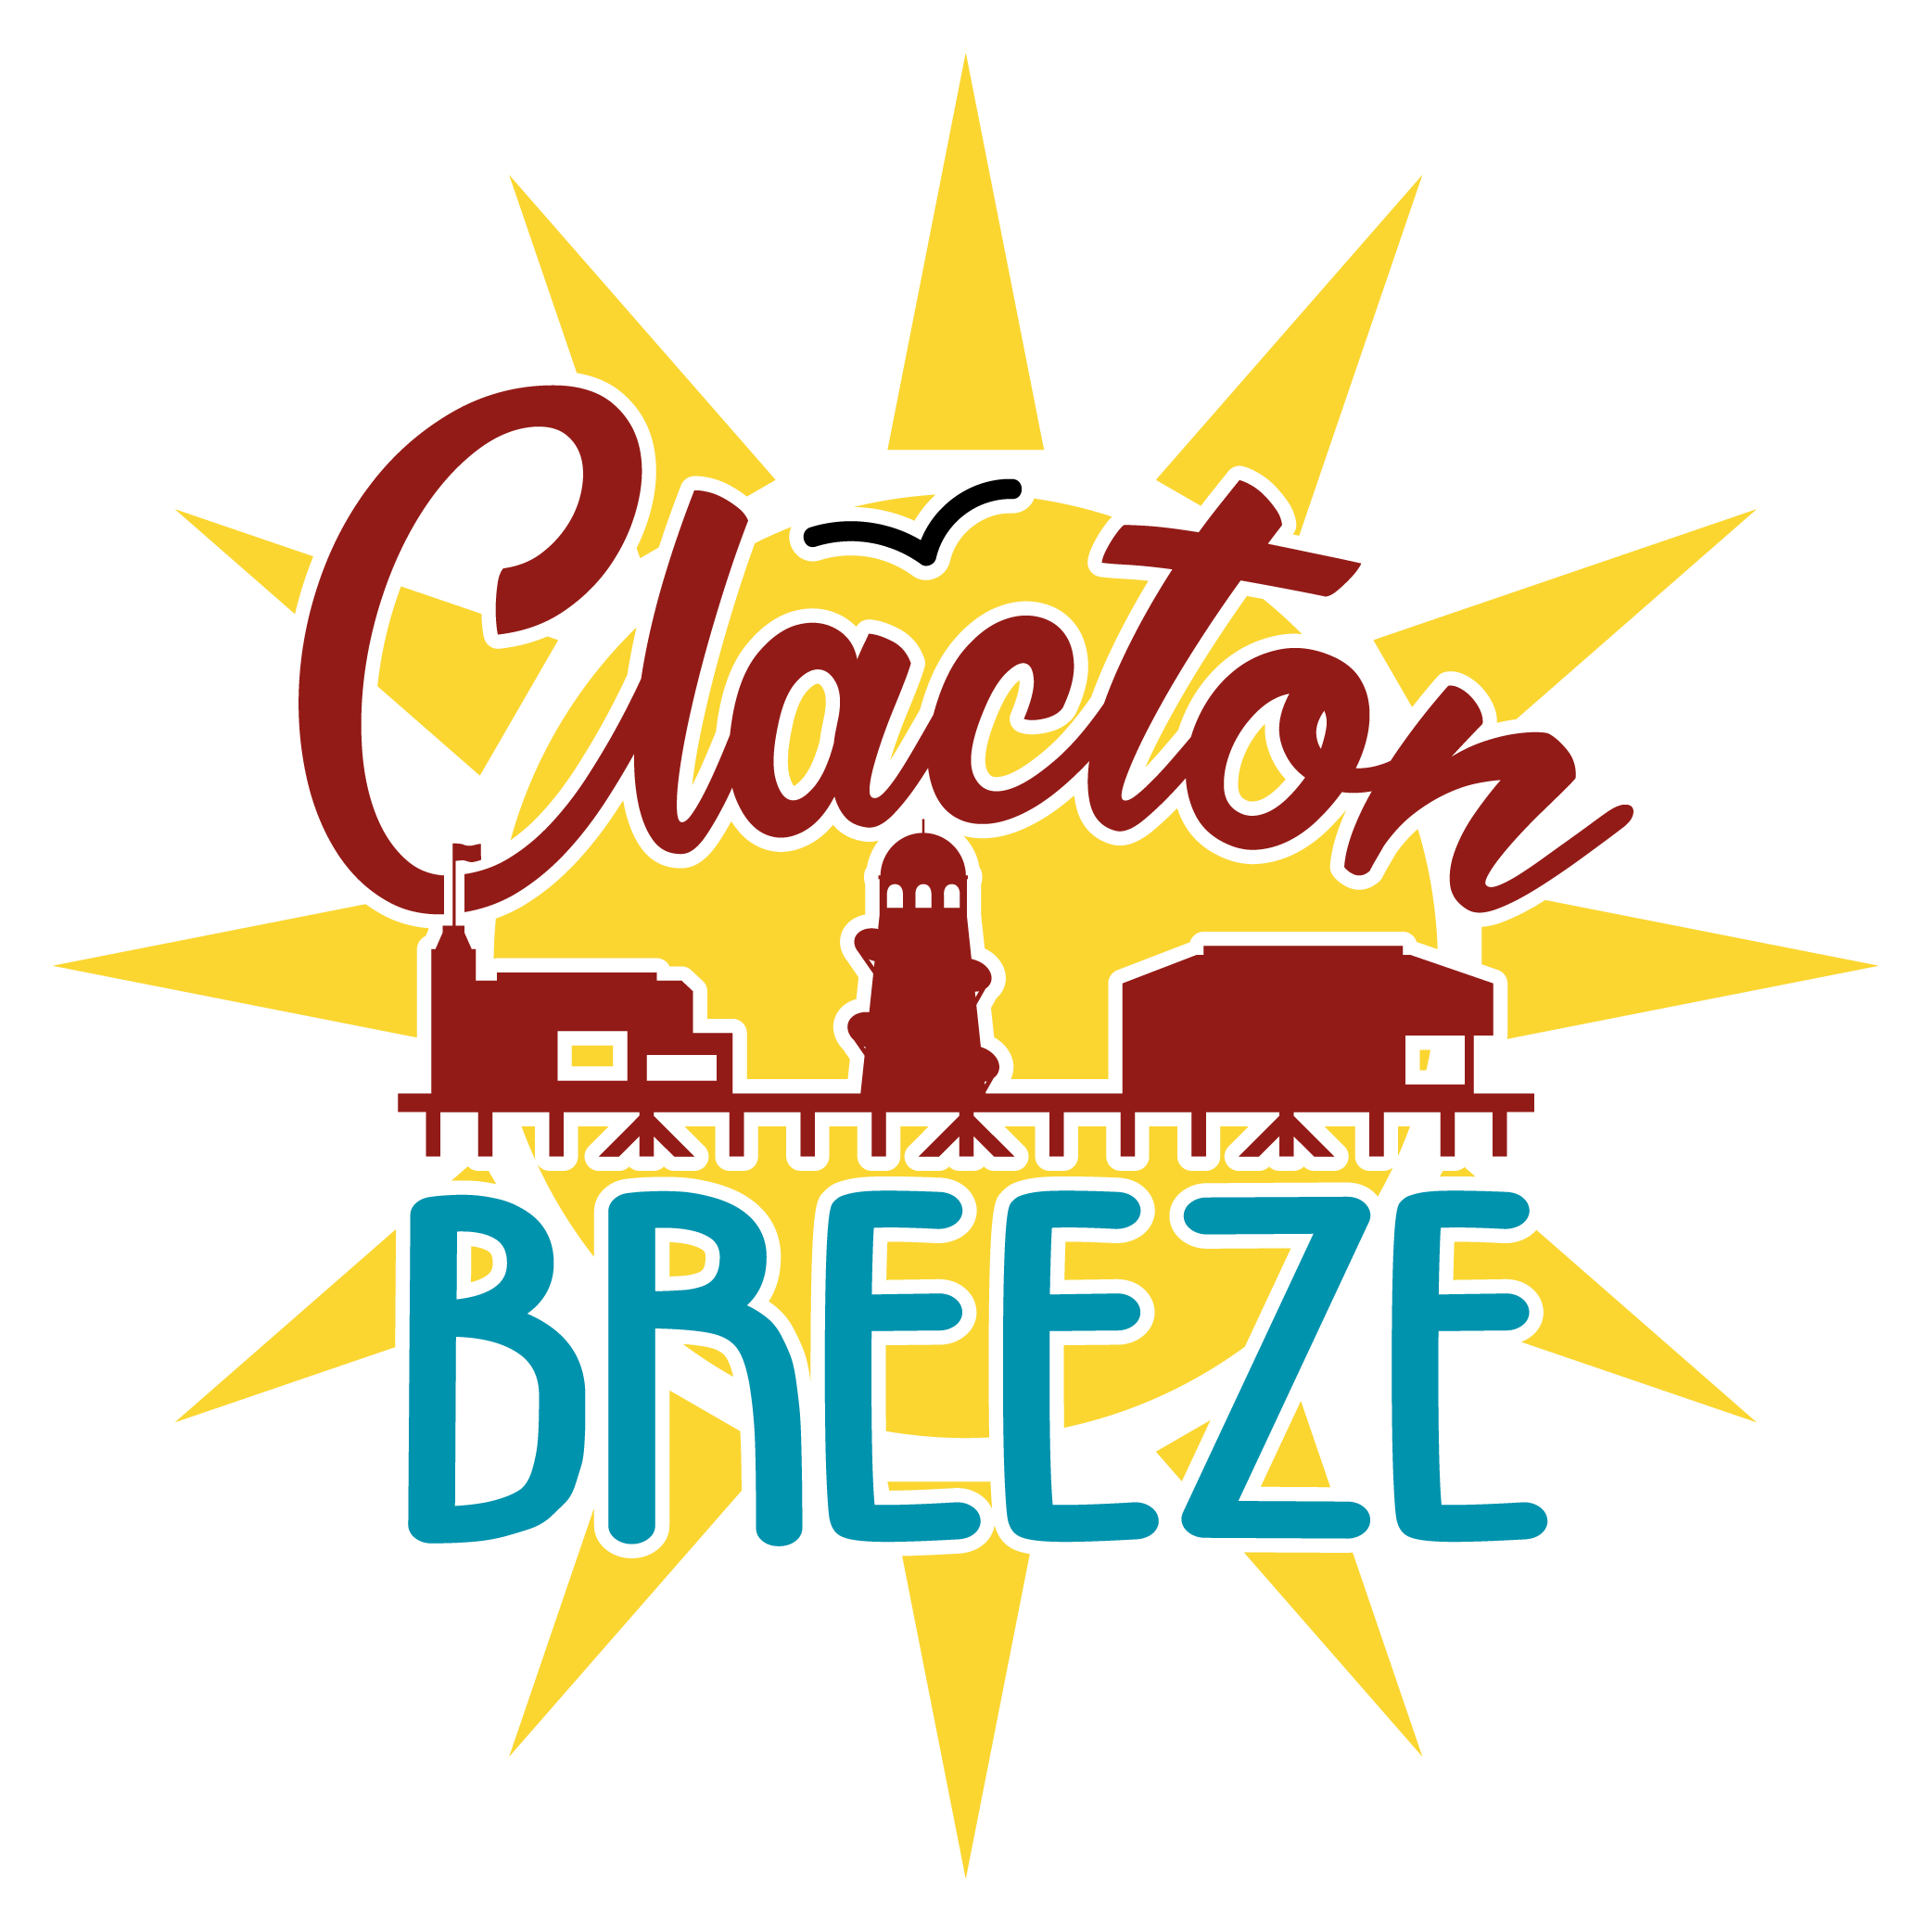 Image of the Clacton Breeze